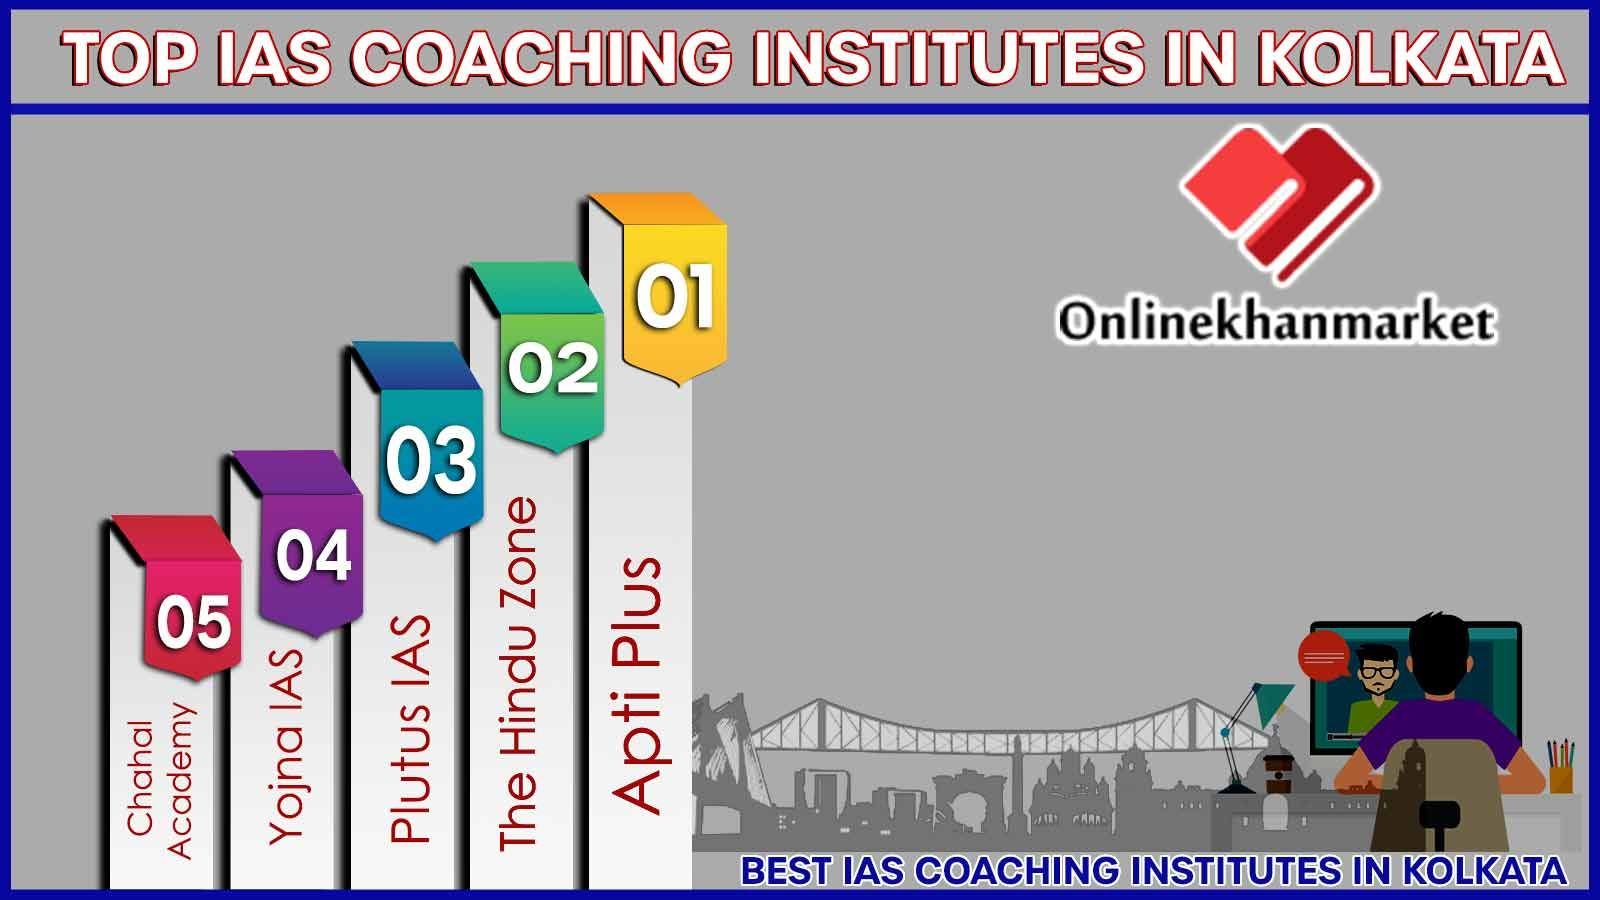 How To Get Information About The Best IAS Coaching Institute in Kolkata?